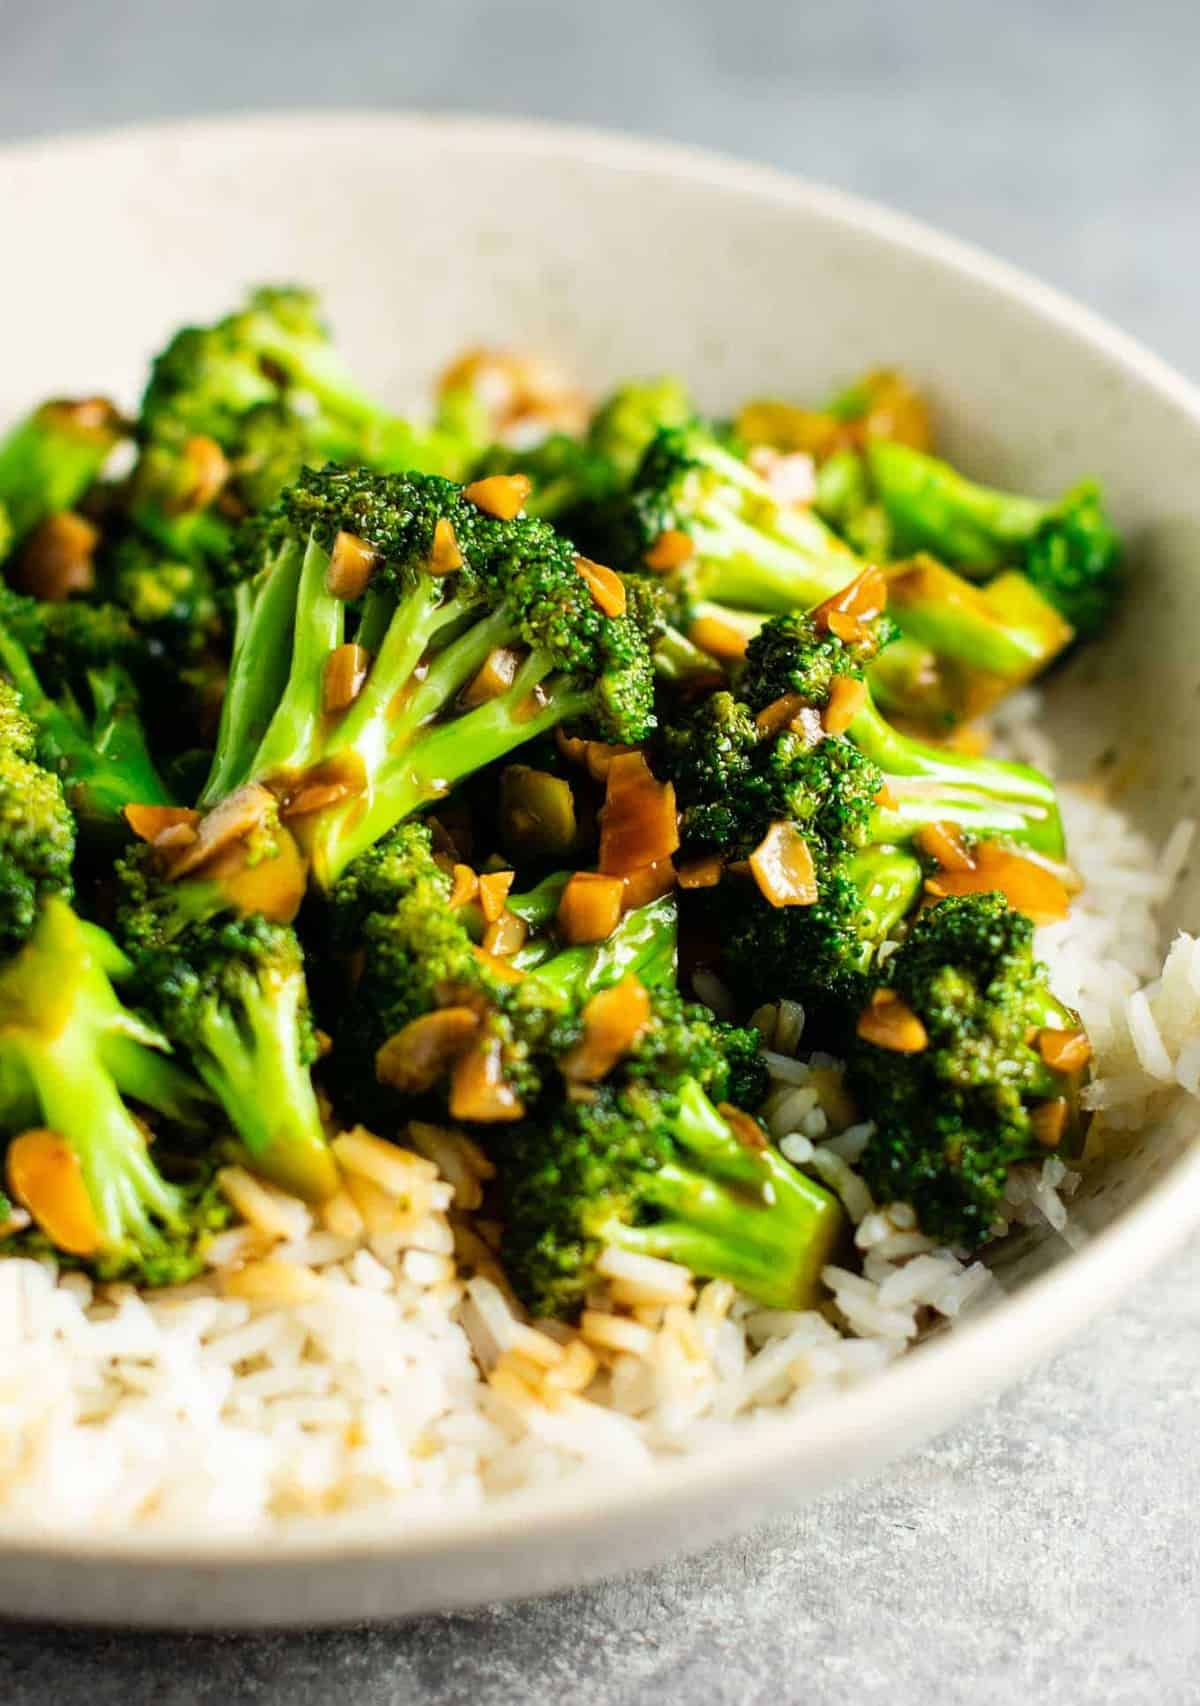 Chinese broccoli with garlic sauce recipe – this is so easy to make and the stir fry sauce is only 3 ingredients! Tastes just like takeout. #broccoliwithgarlicsauce #stirfry #stirfrysauce #broccolistirfry #vegan #vegetarian #sidedish #chinese